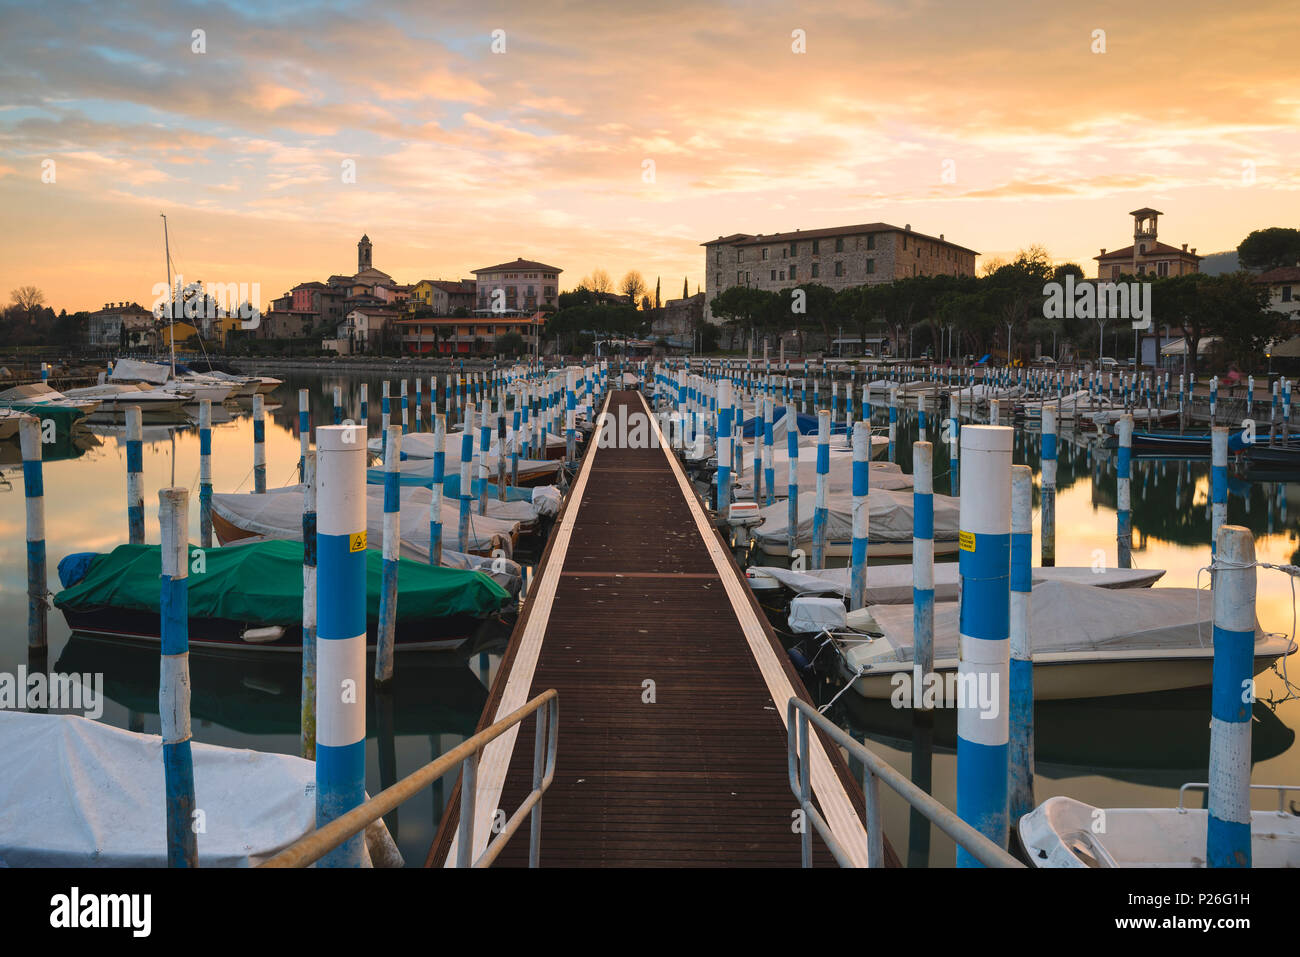 Clusane d'Iseo, Iseo lake, Brescia province, Lombardy, Italy, Europe. - Stock Image